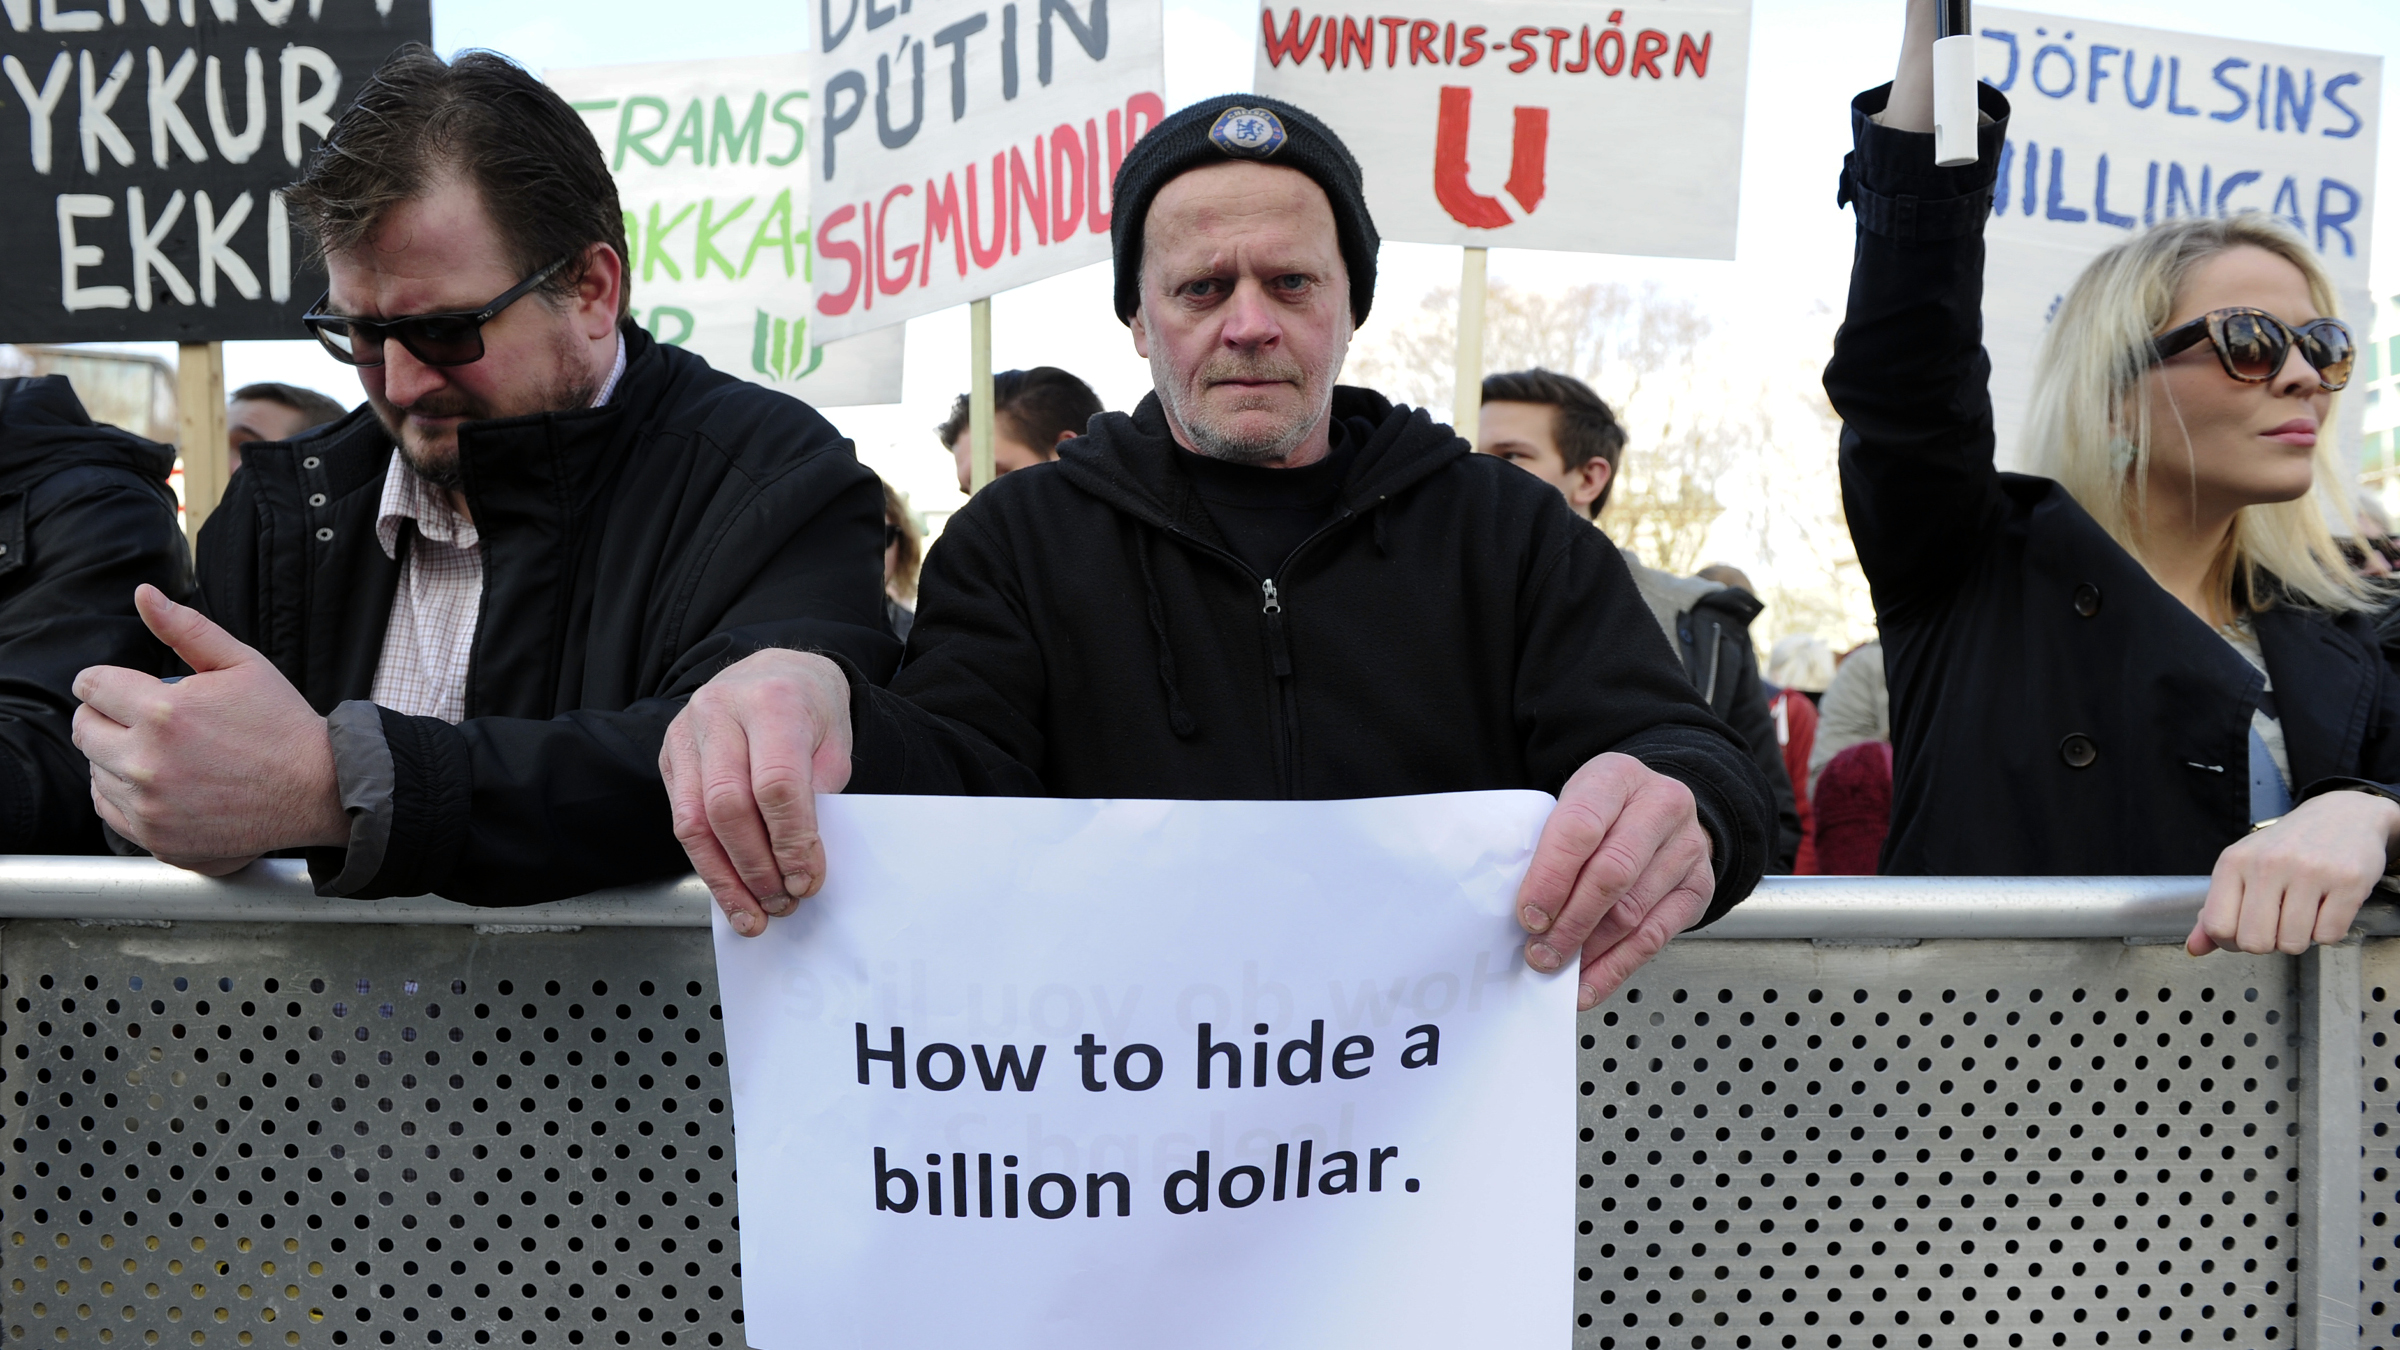 People demonstrate against Iceland's Prime Minister Sigmundur Gunnlaugsson in Reykjavik, Iceland on April 4, 2016 after a leak of documents by so-called Panama Papers stoked anger over his wife owning a tax haven-based company with large claims on the country's collapsed banks.